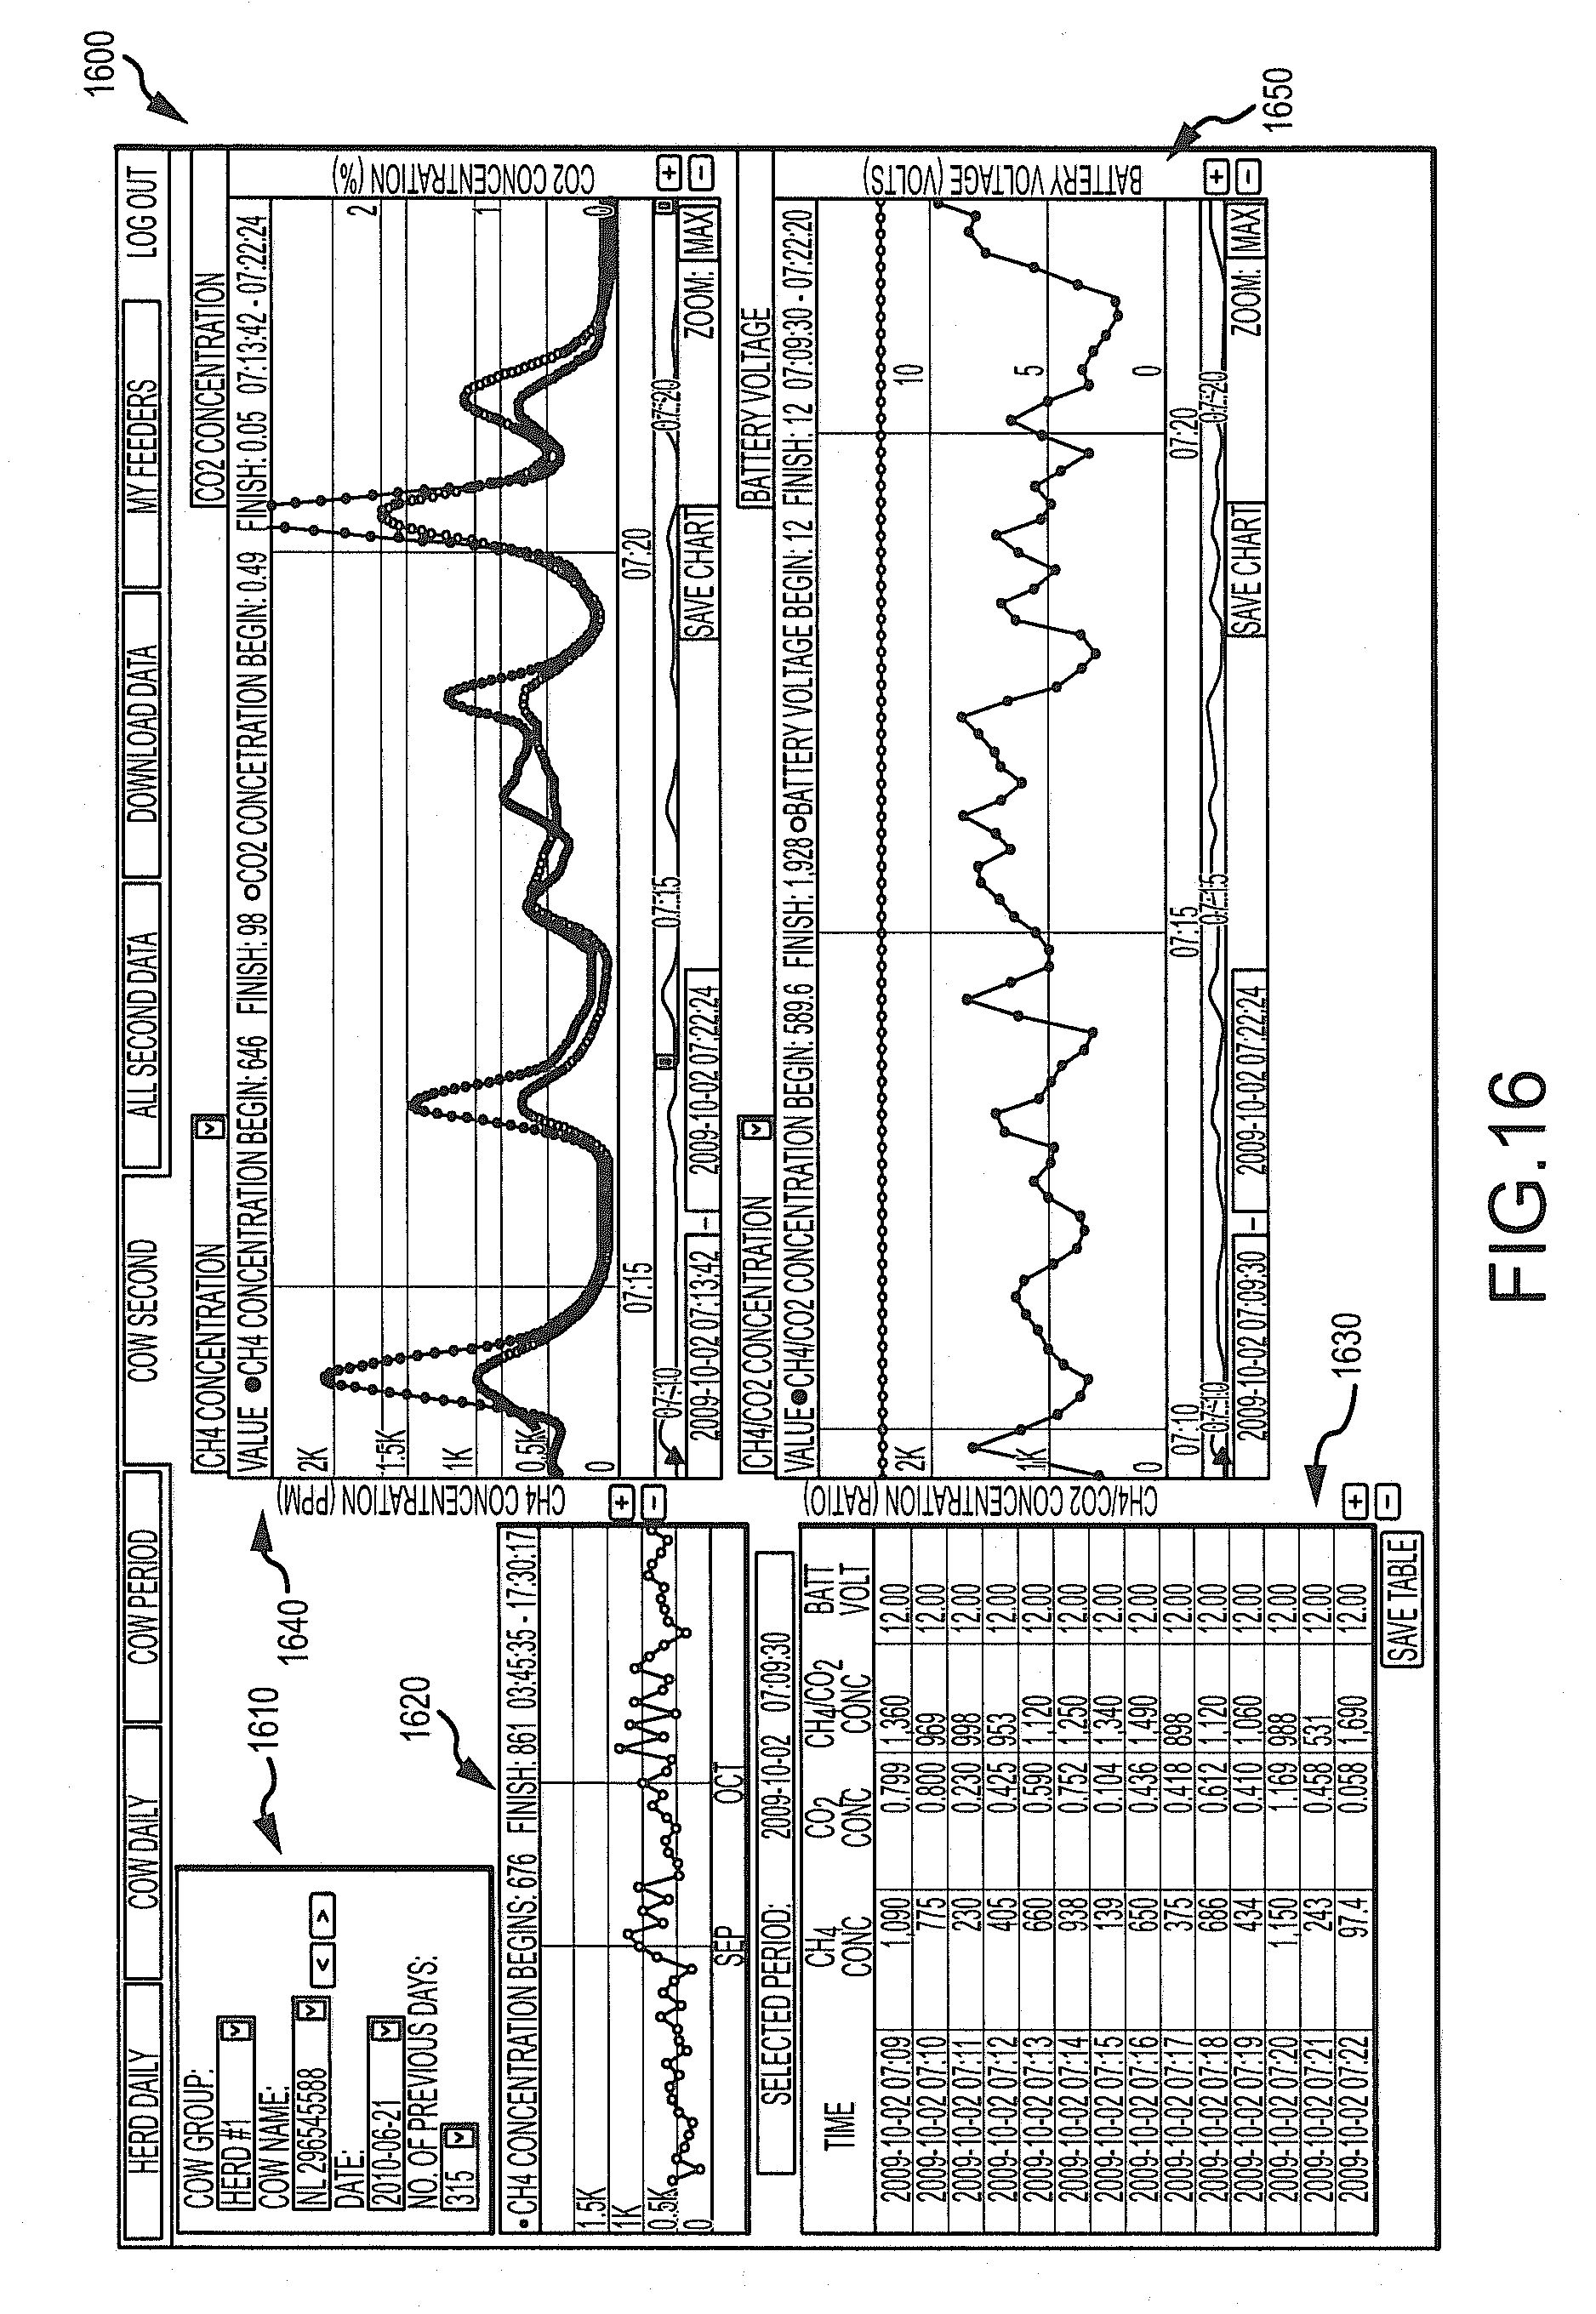 Patent Us8453601 Vaccine And Health Related Applications For Likewise Database Table Relationship Diagram On Deer Feeder Drawing